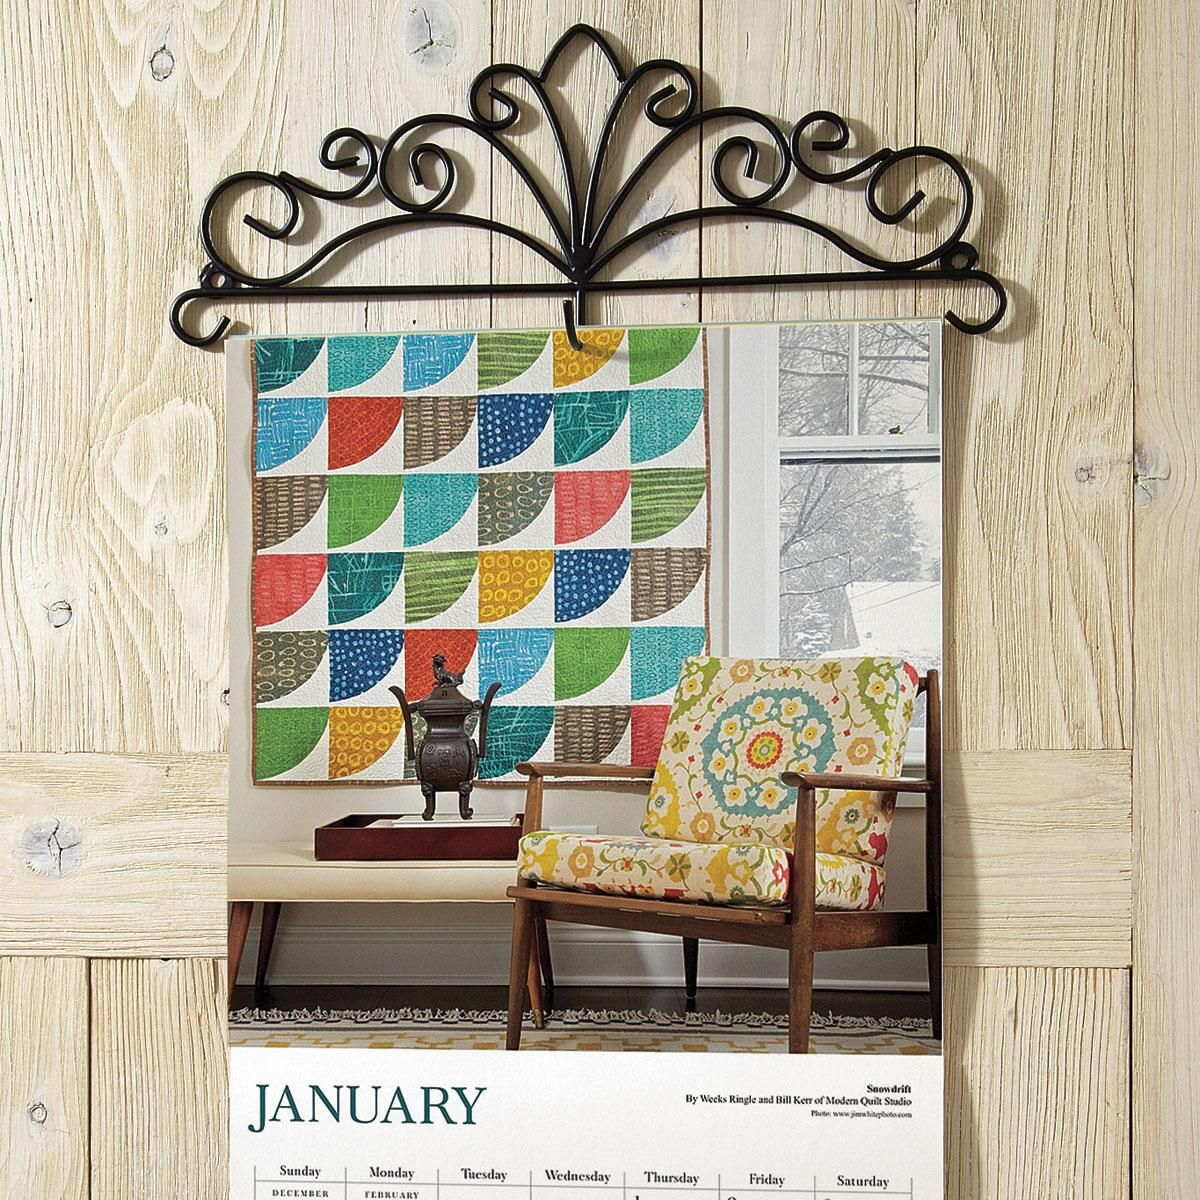 Scrolled Metal Wire Calendar Topper   Current Catalog with regard to Wall Calendar Frames